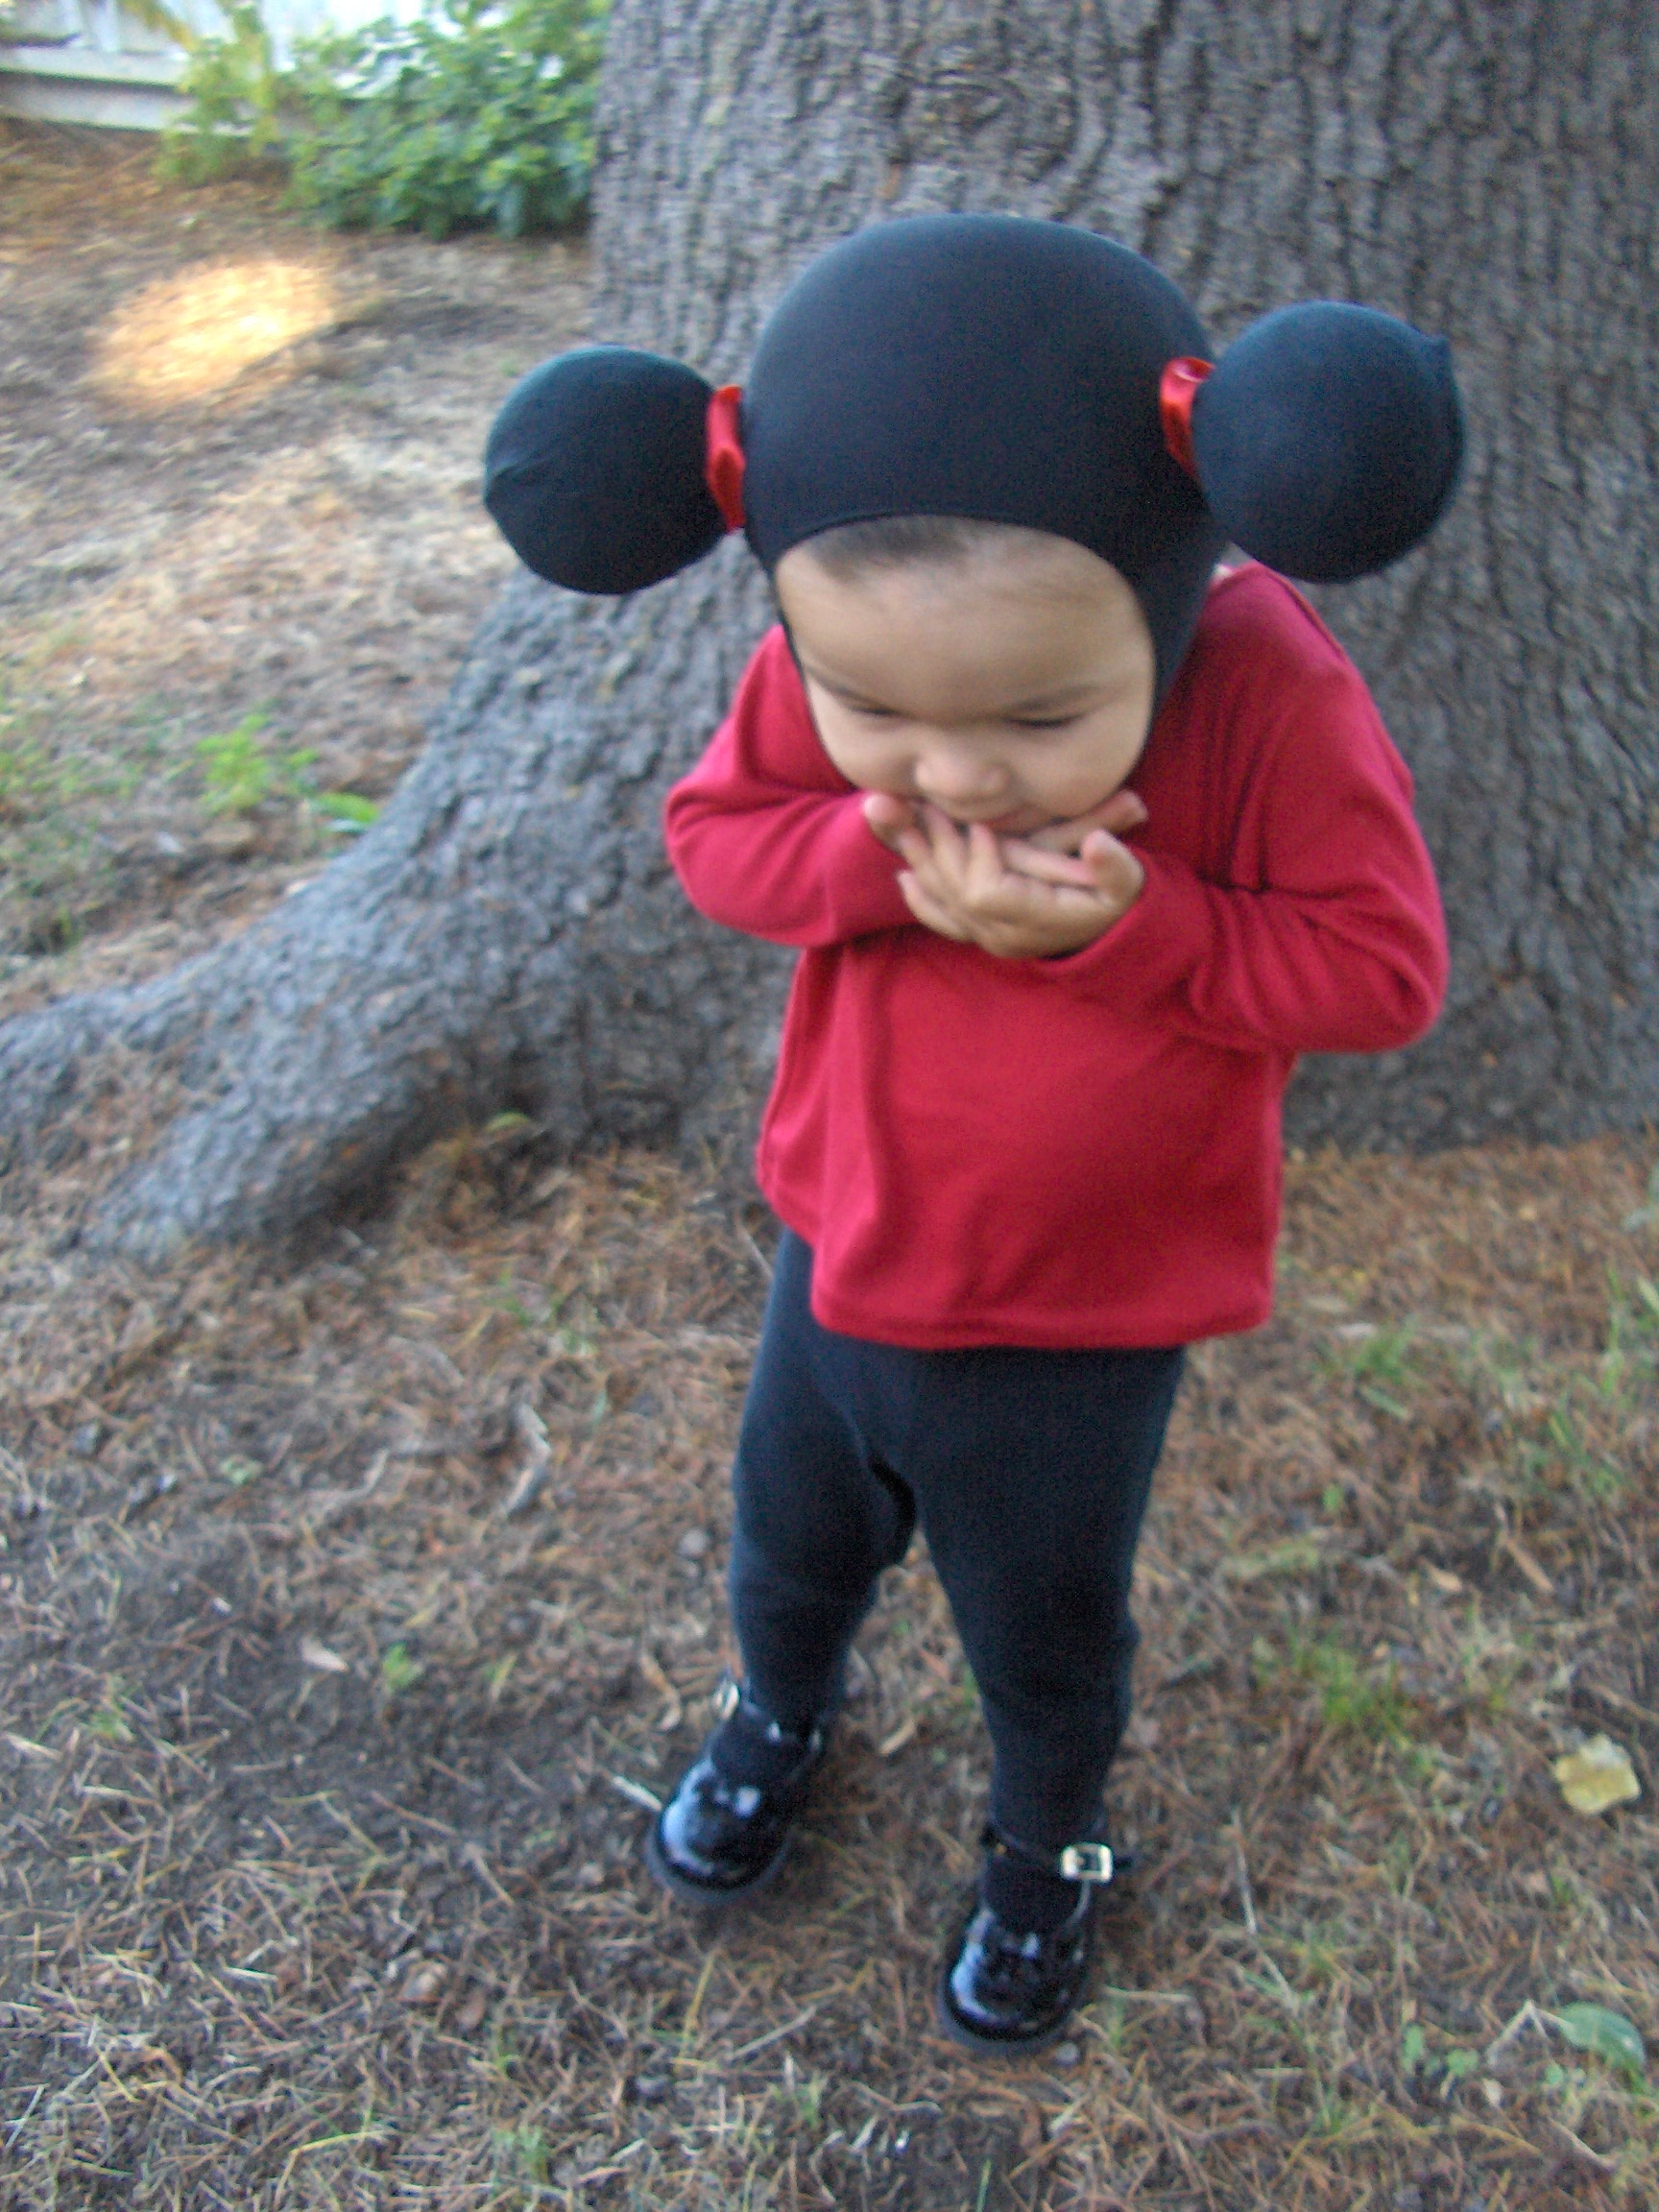 How to Make a Pucca Costume